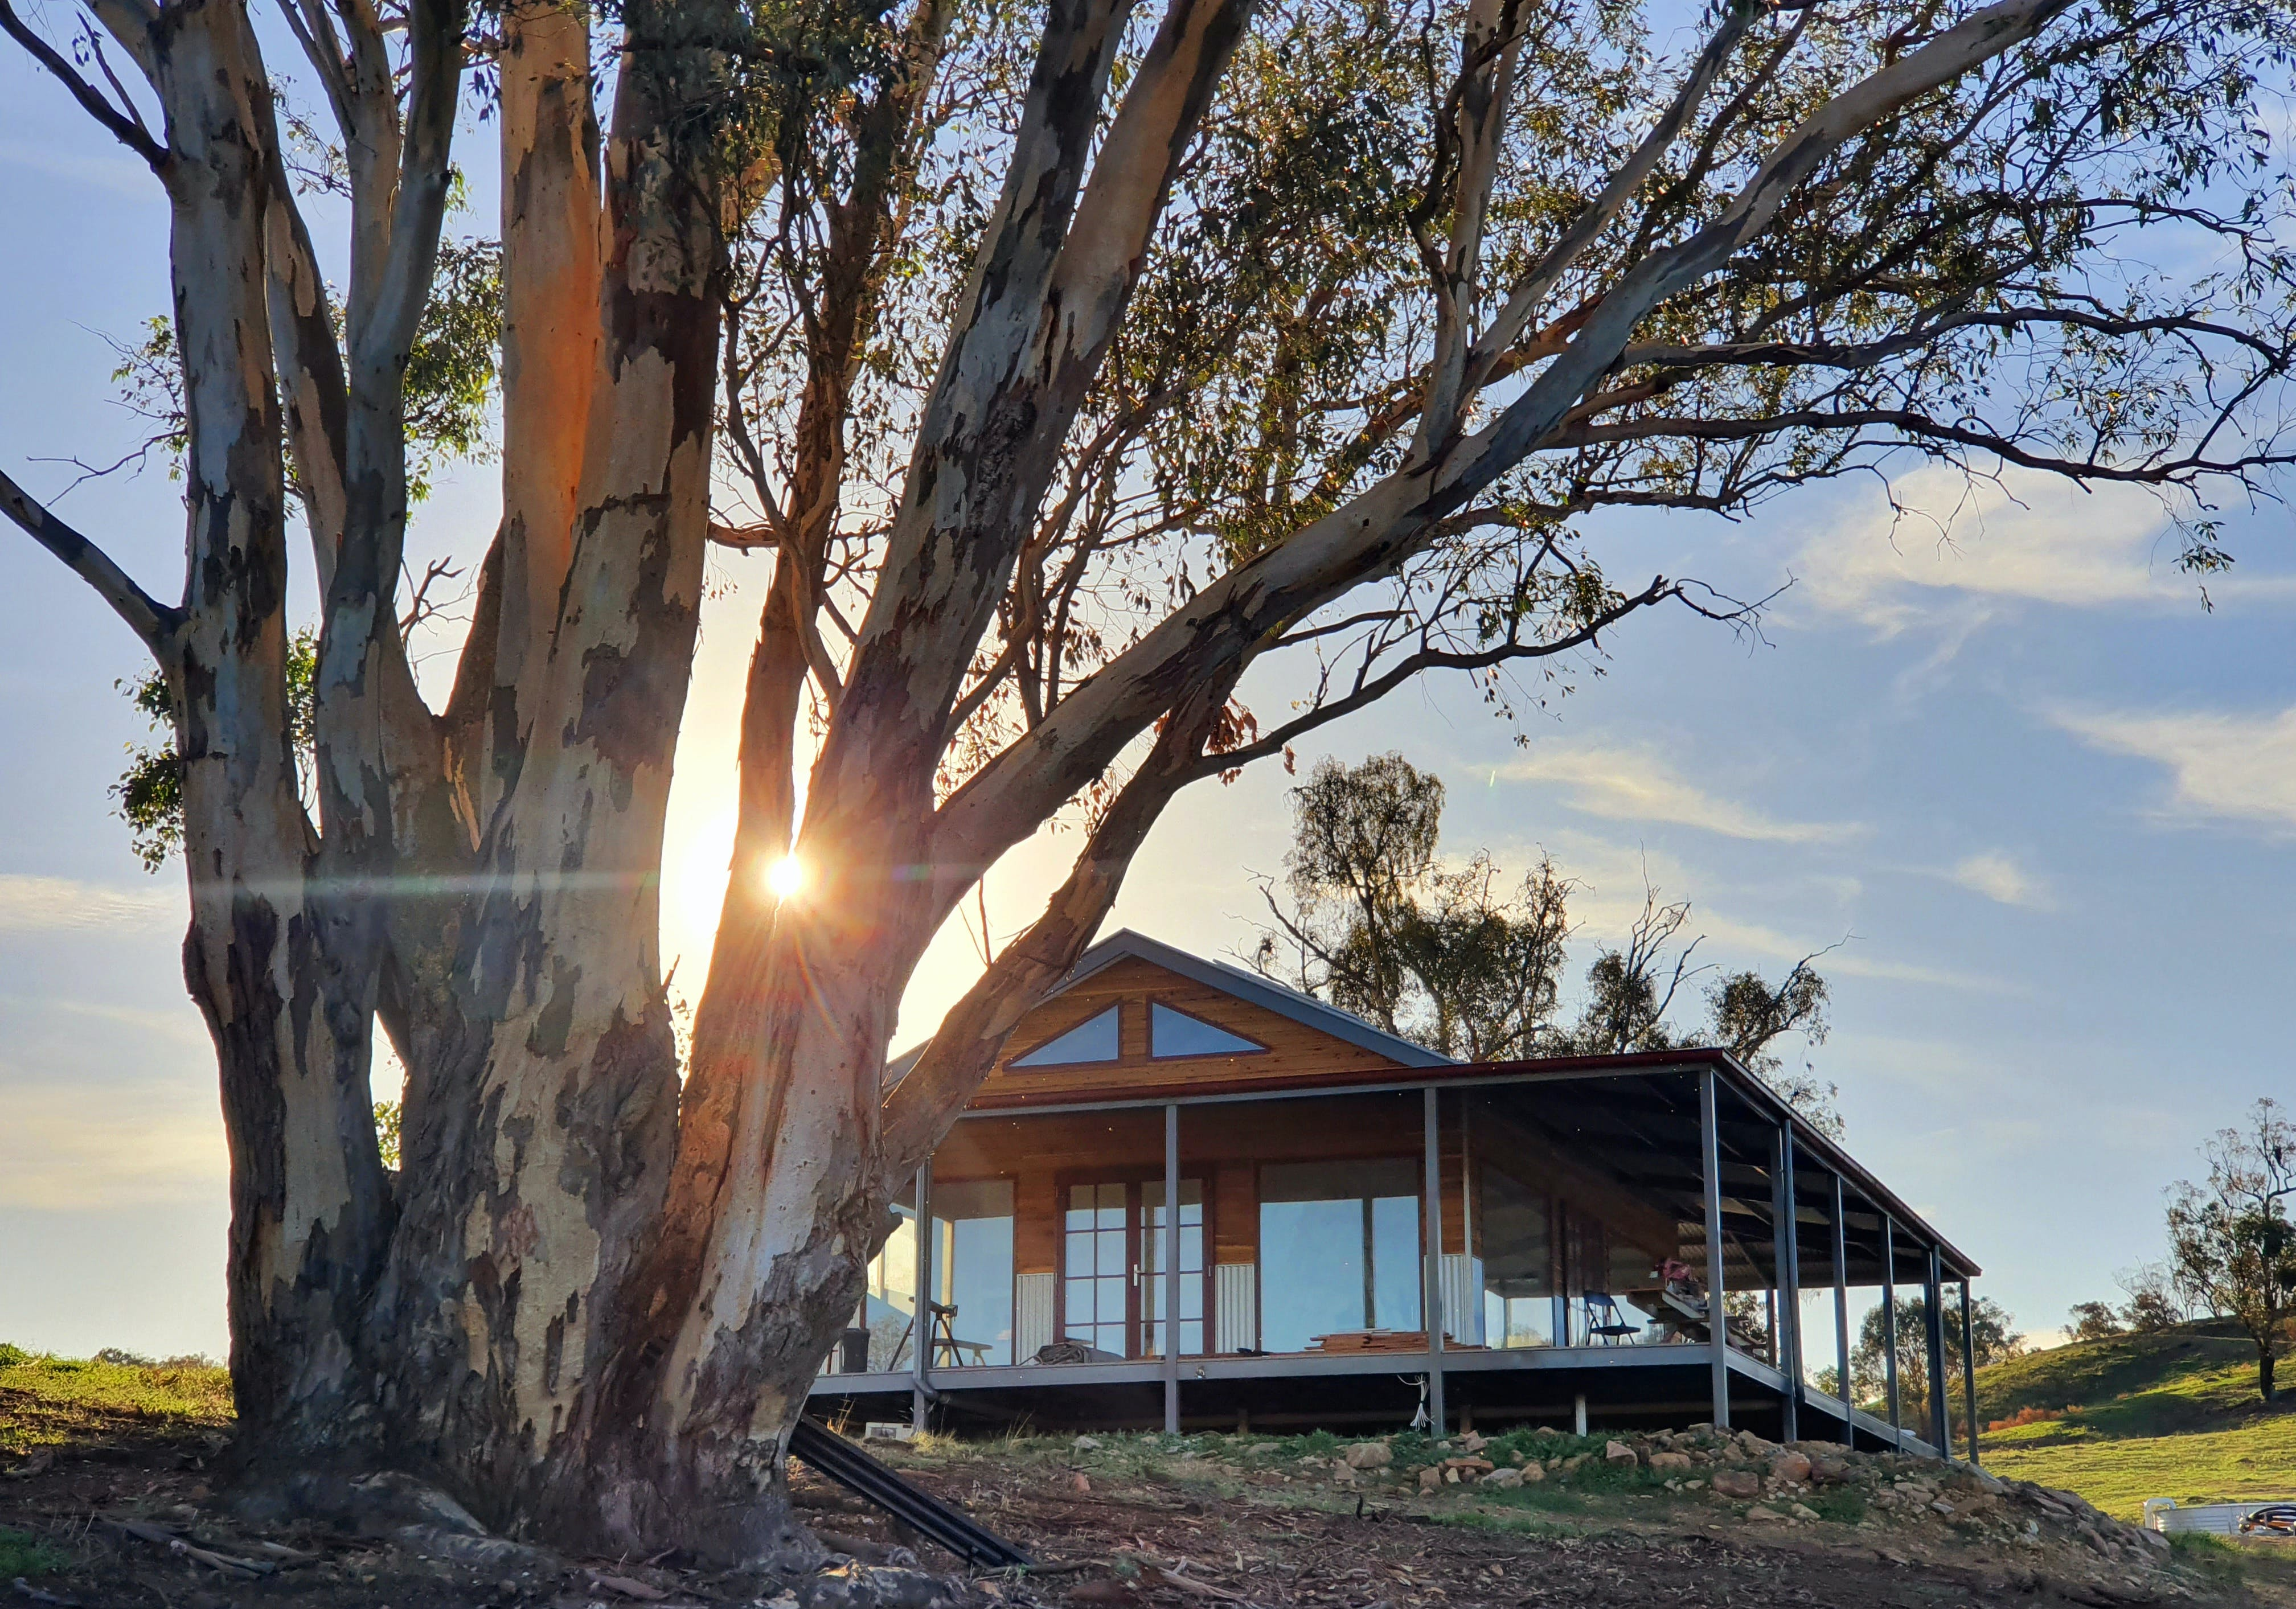 Kestrel Nest EcoHut - Accommodation Perth